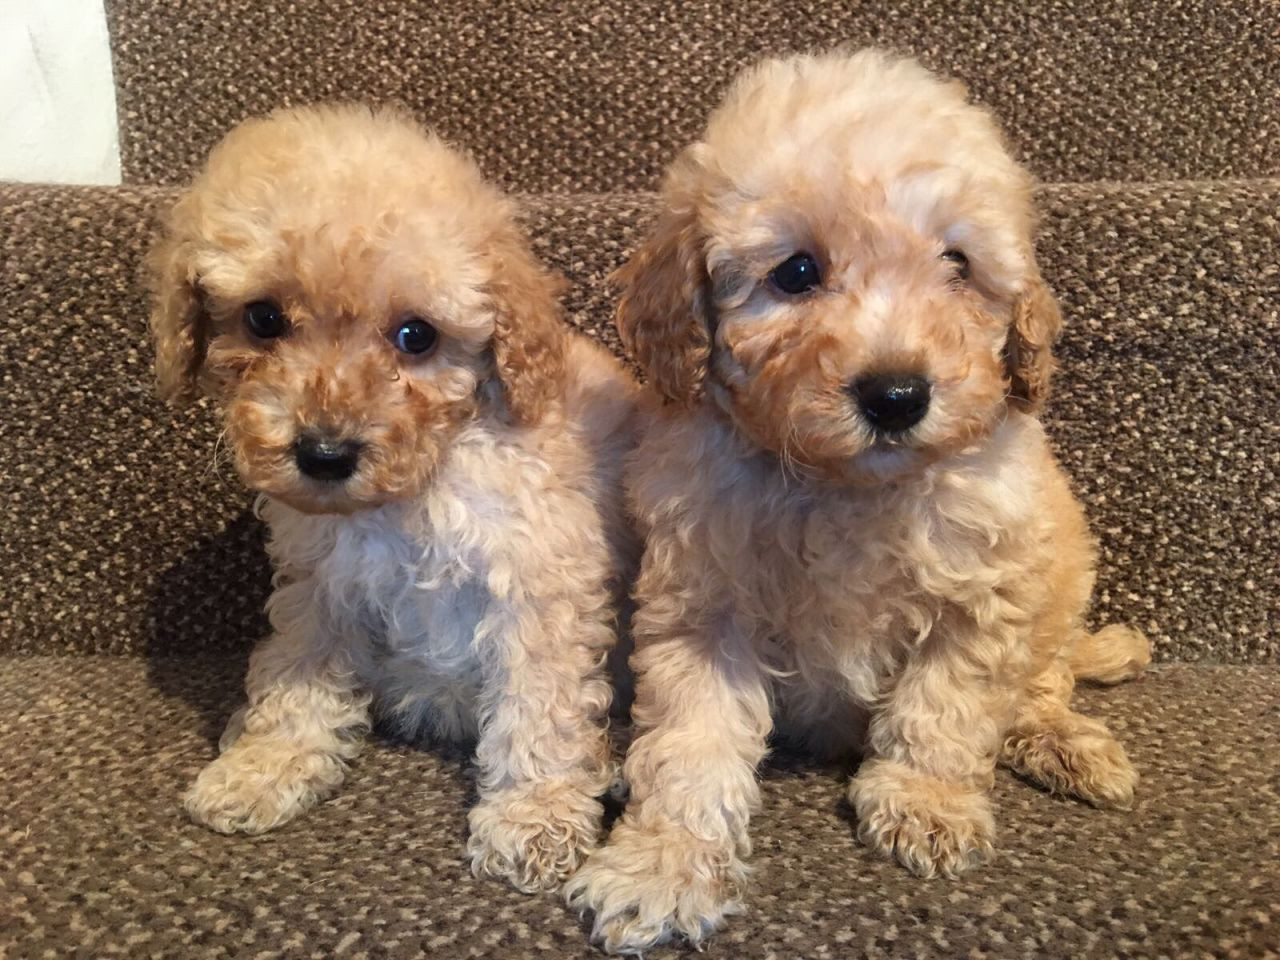 Miniature Poodle Puppies For Sale  Seattle, Wa 192177-5983